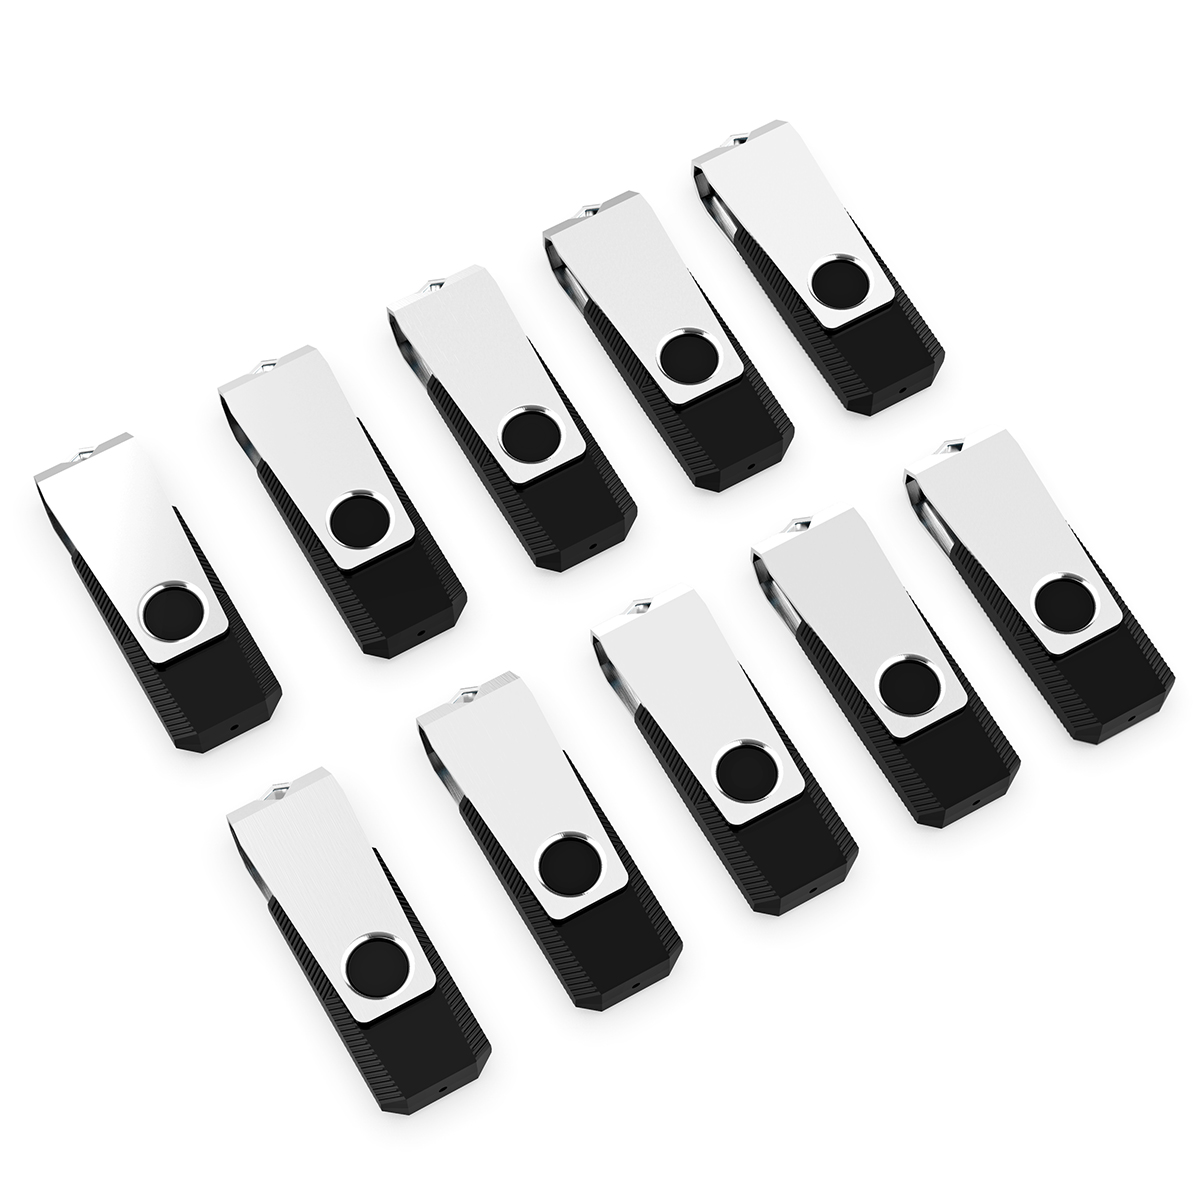 KOOTION 10Pack 8GB USB 2.0 Flash Drive Thumb Drives Memory Stick, Black